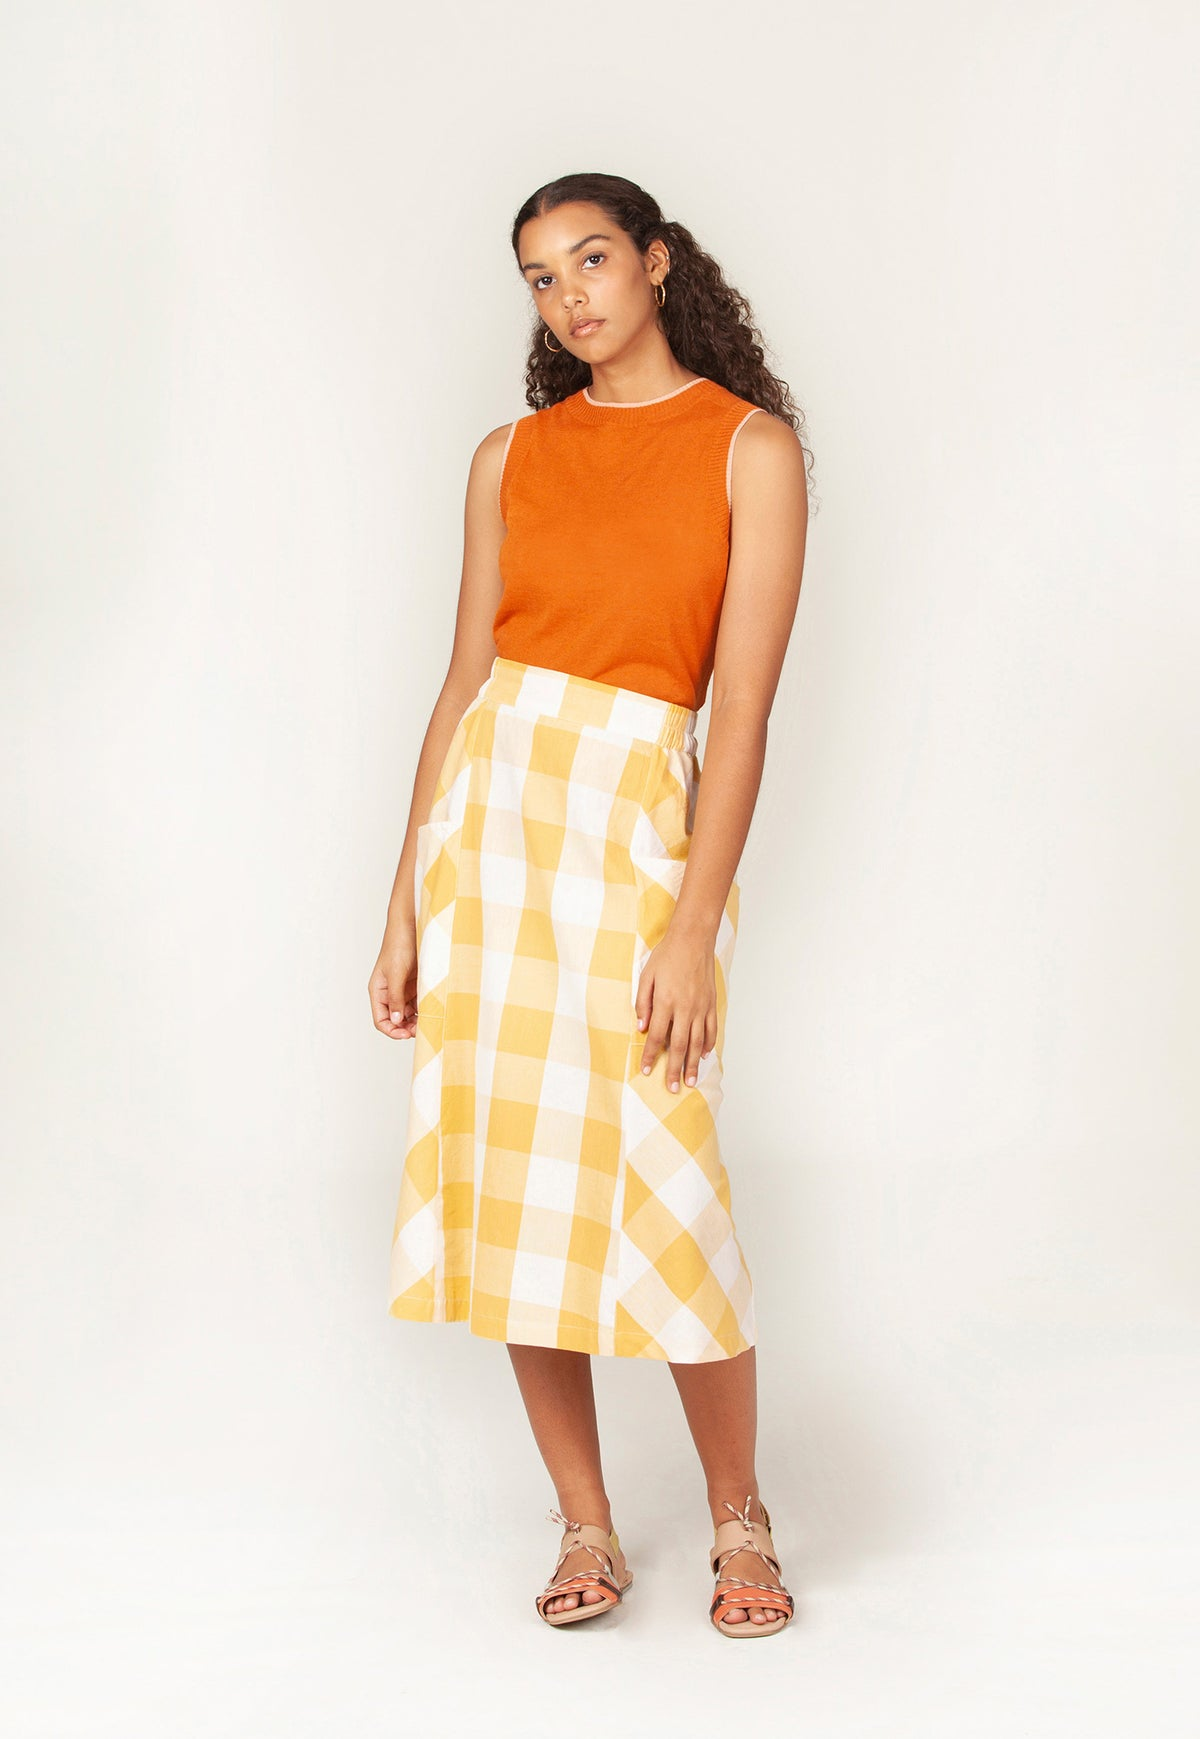 Turners Skirt - Sunshine Check